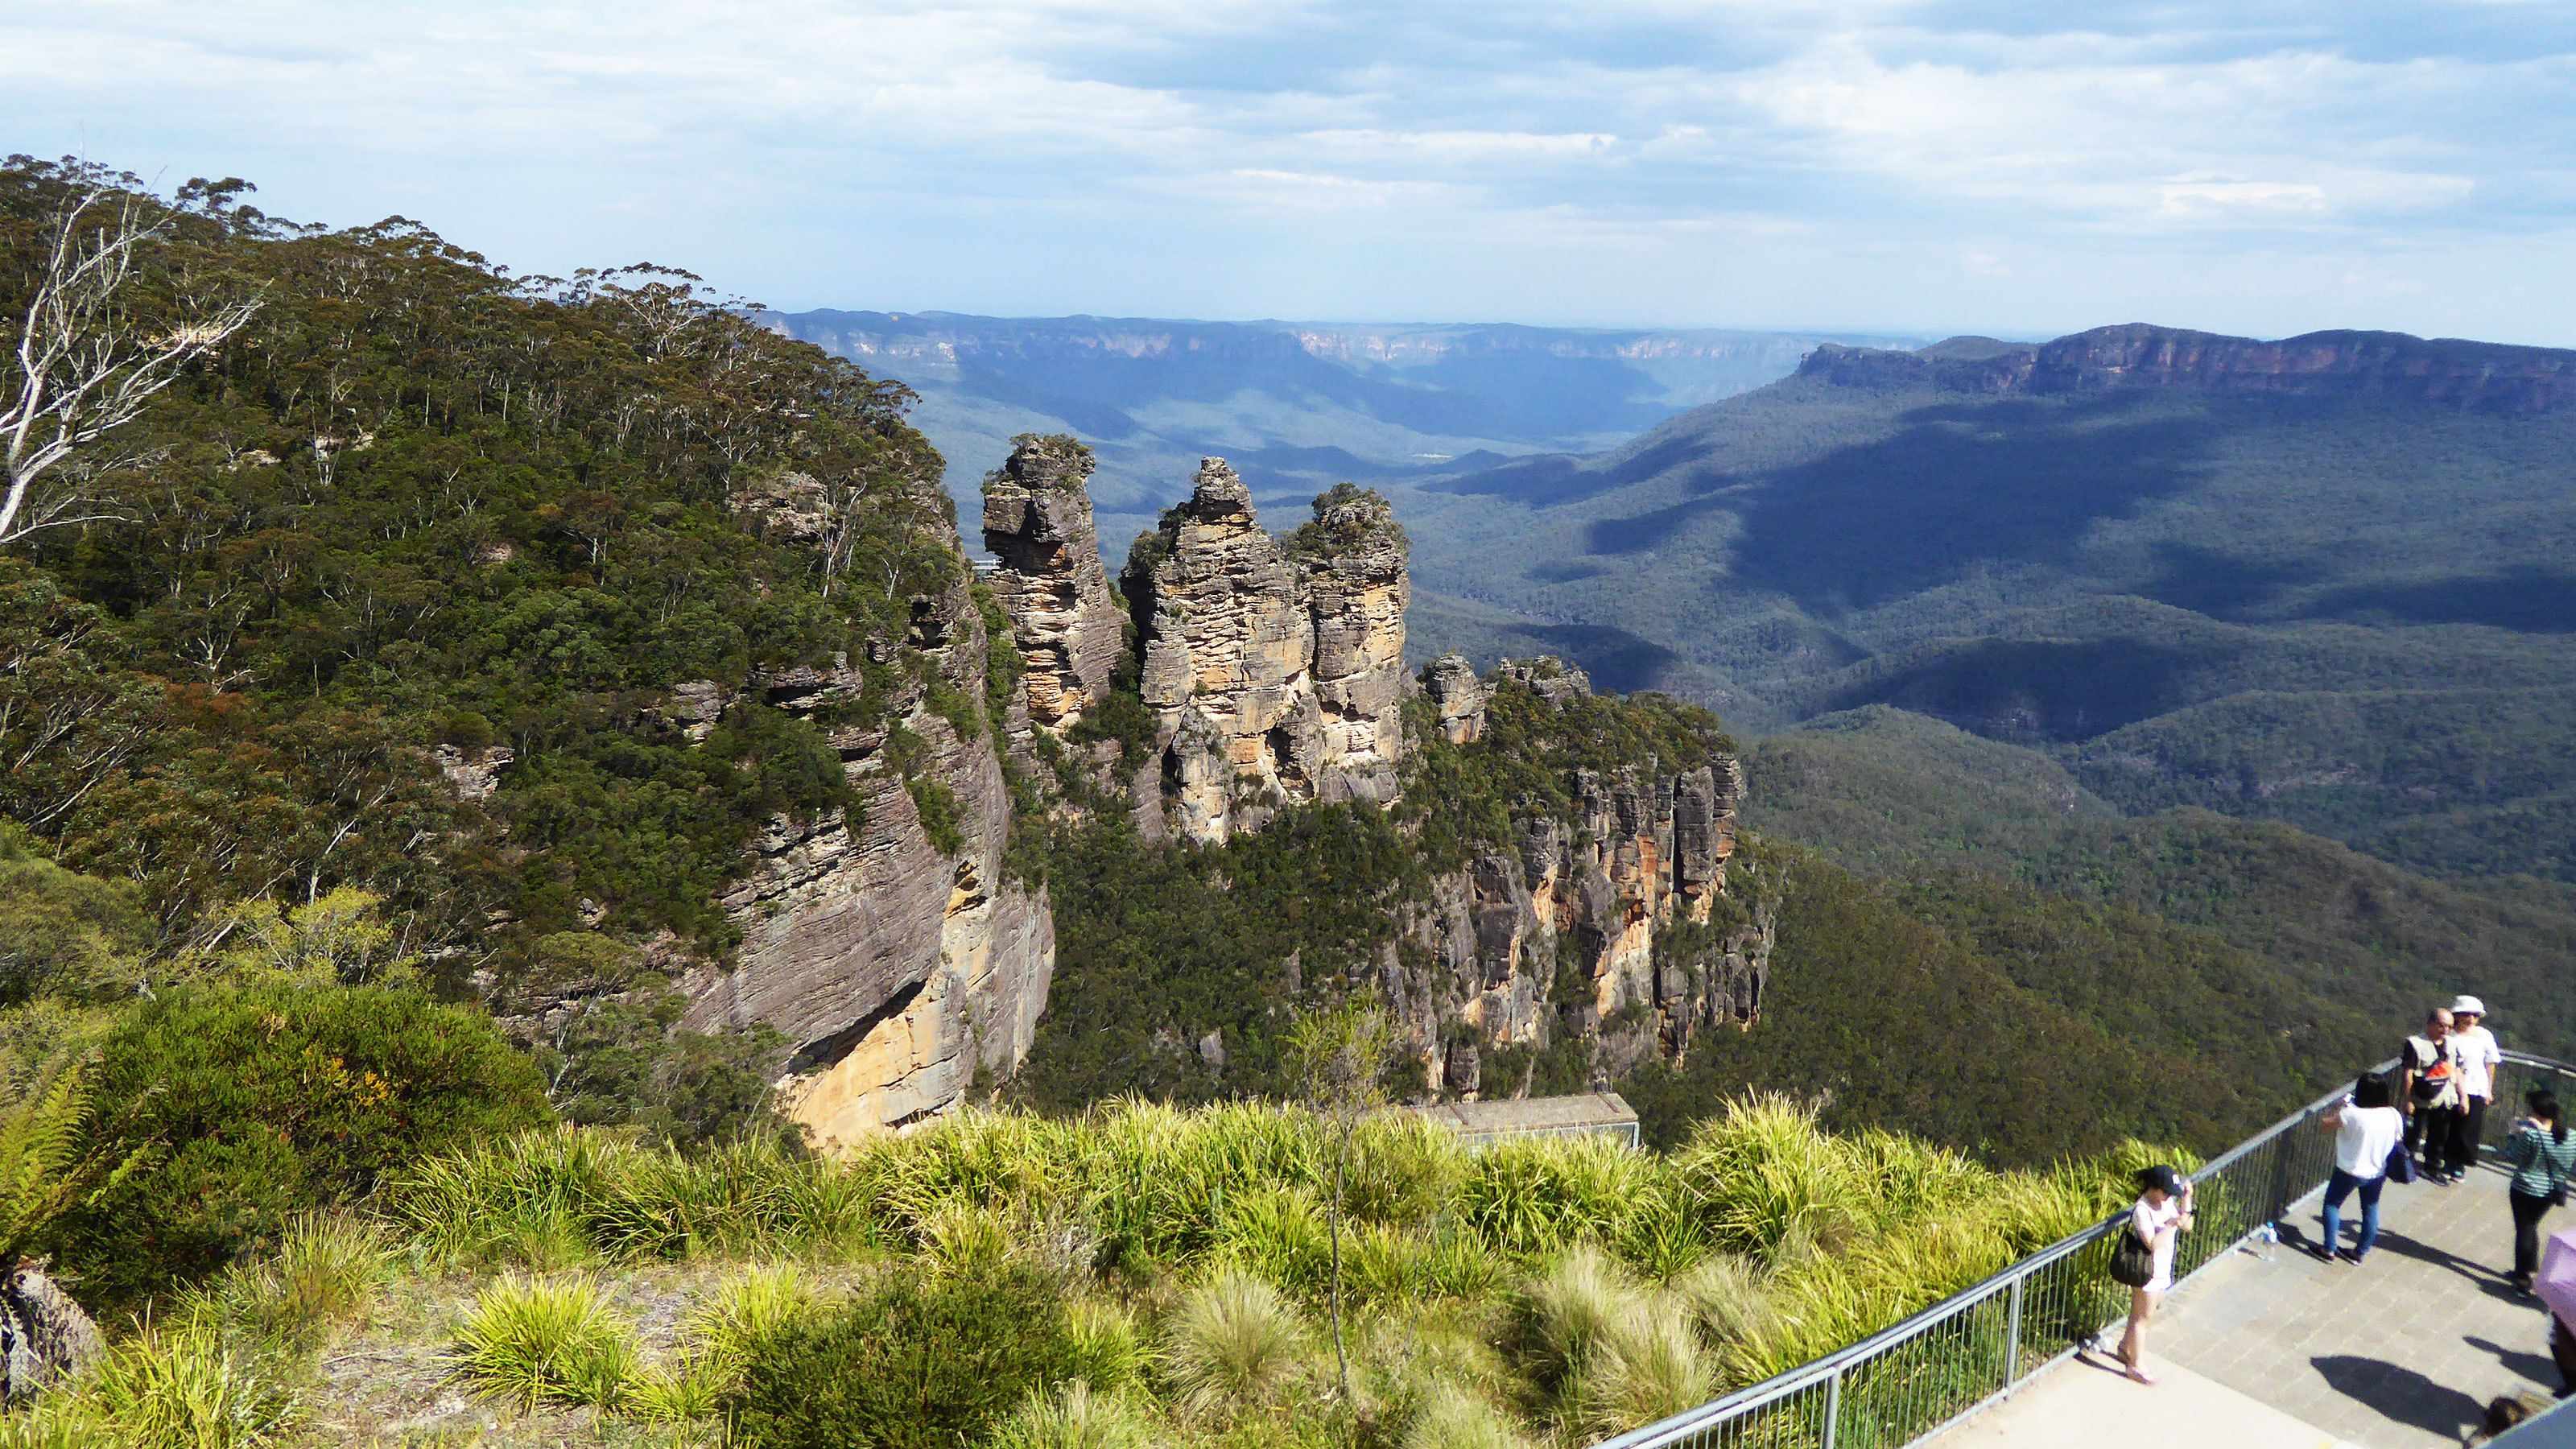 Tourists viewing at the landscape of the blue mountains